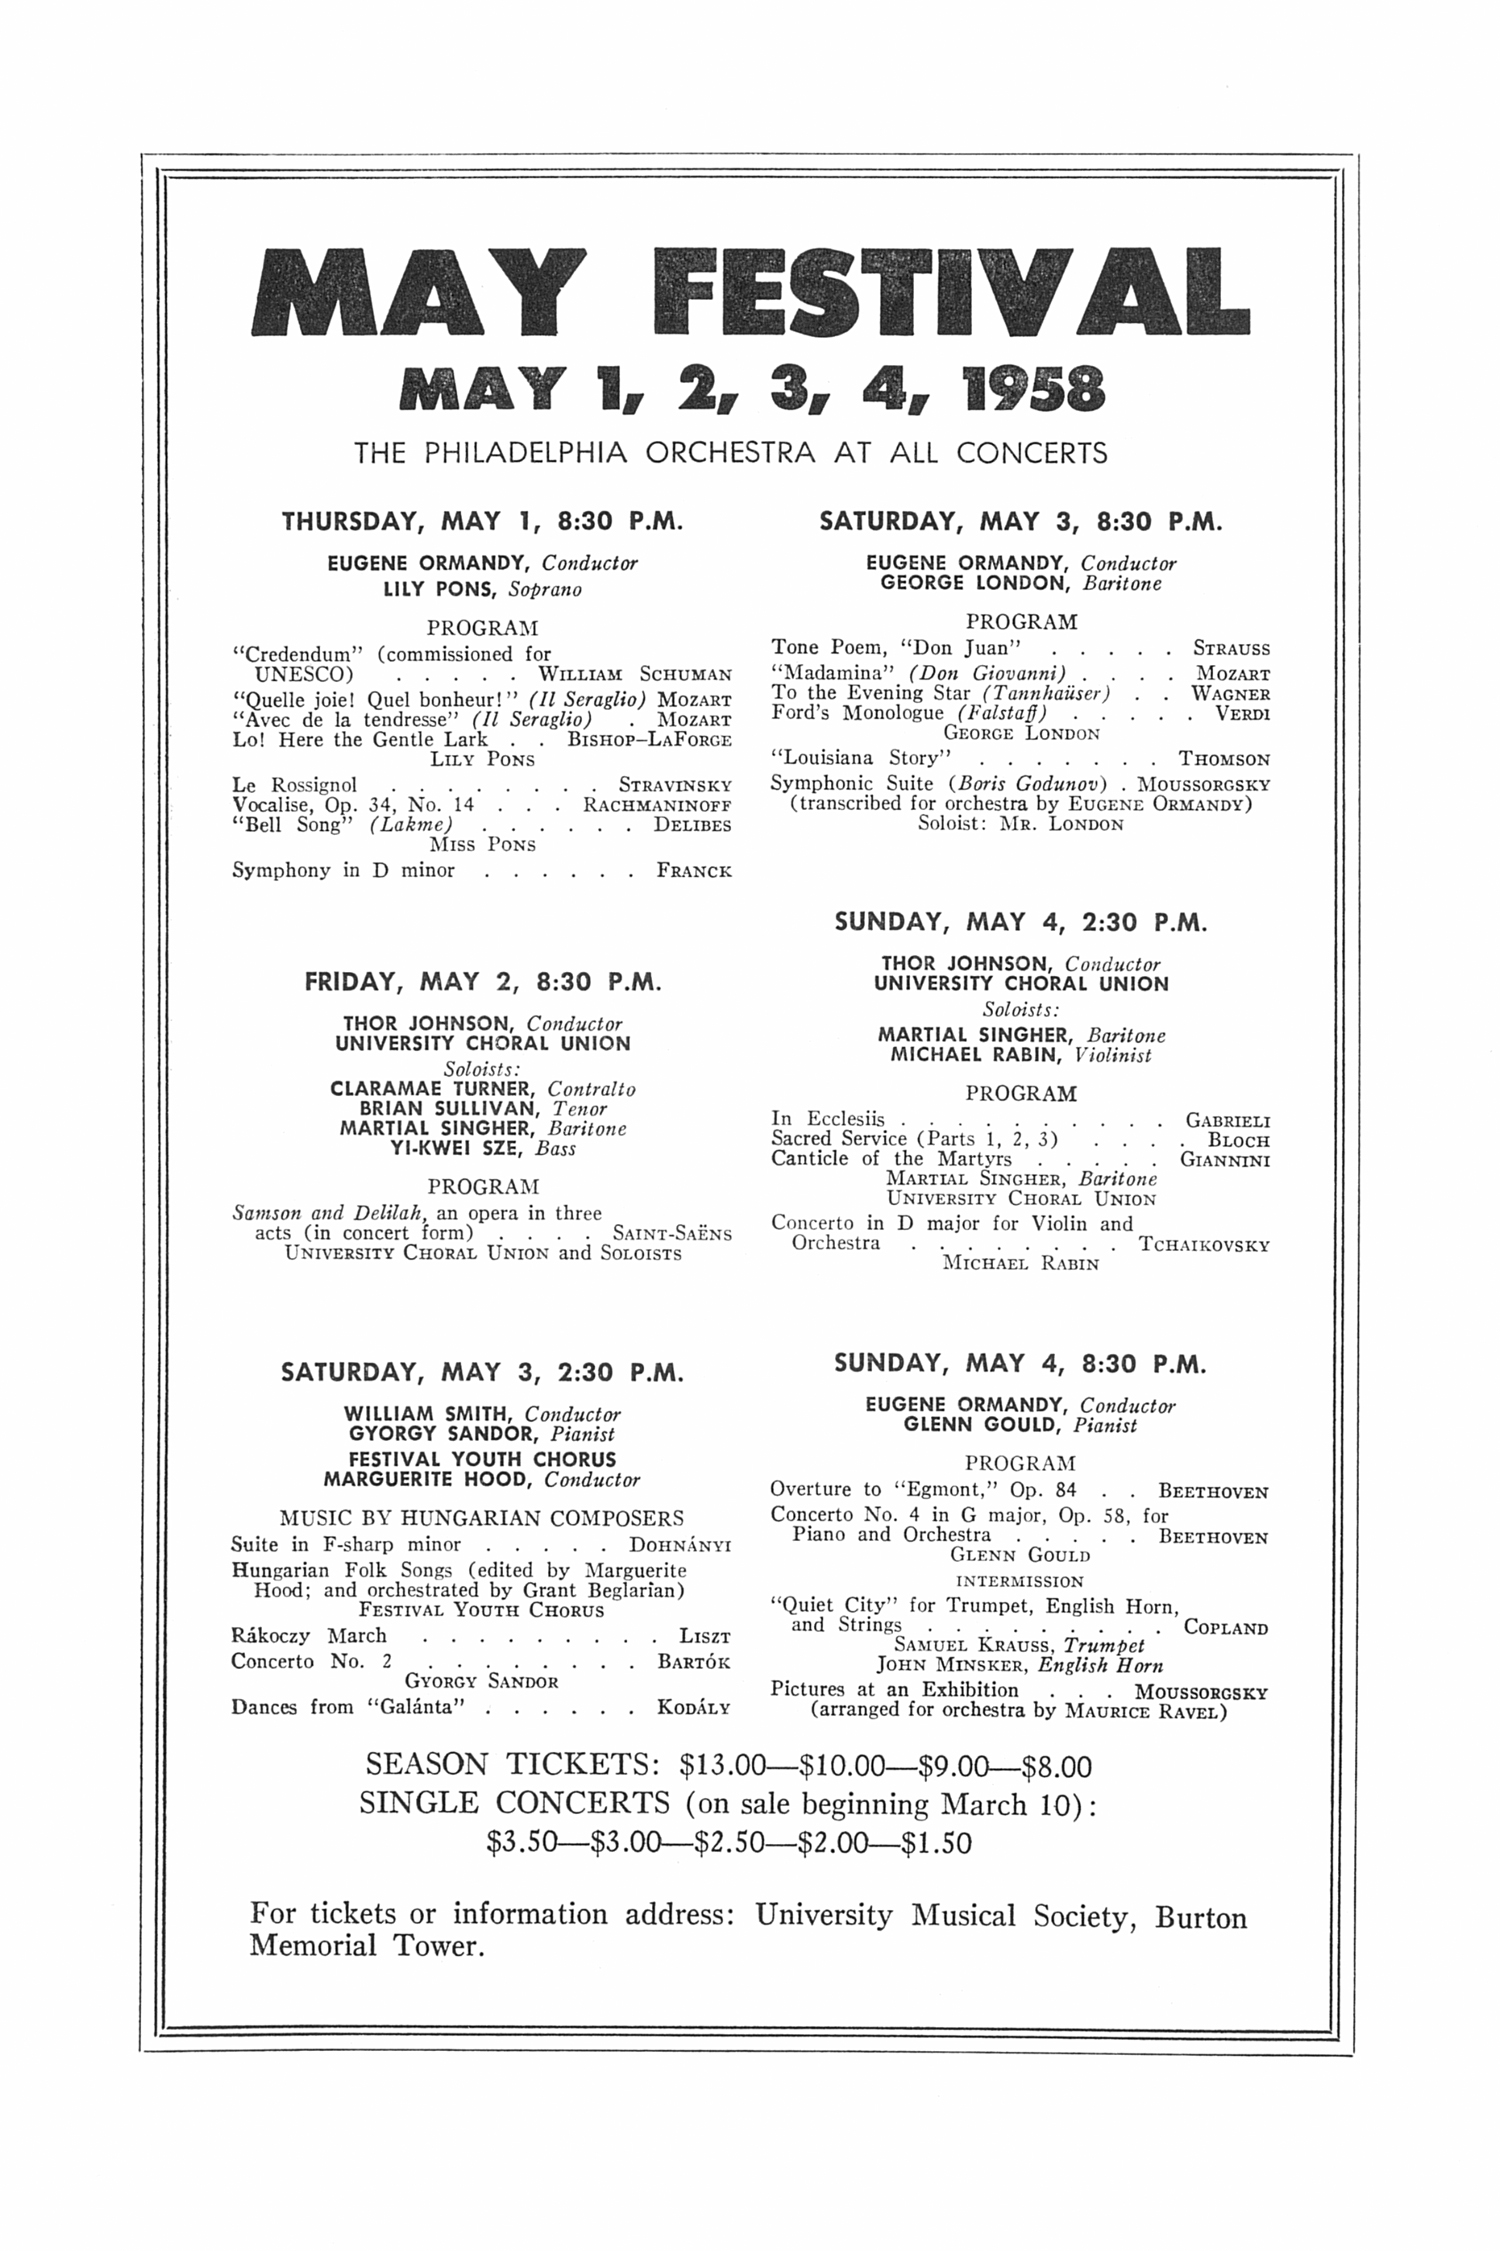 UMS Concert Program, February 25, 1958: Seventy-ninth Annual Choral Union Concert Series -- Obernkirchen Children's Choir image